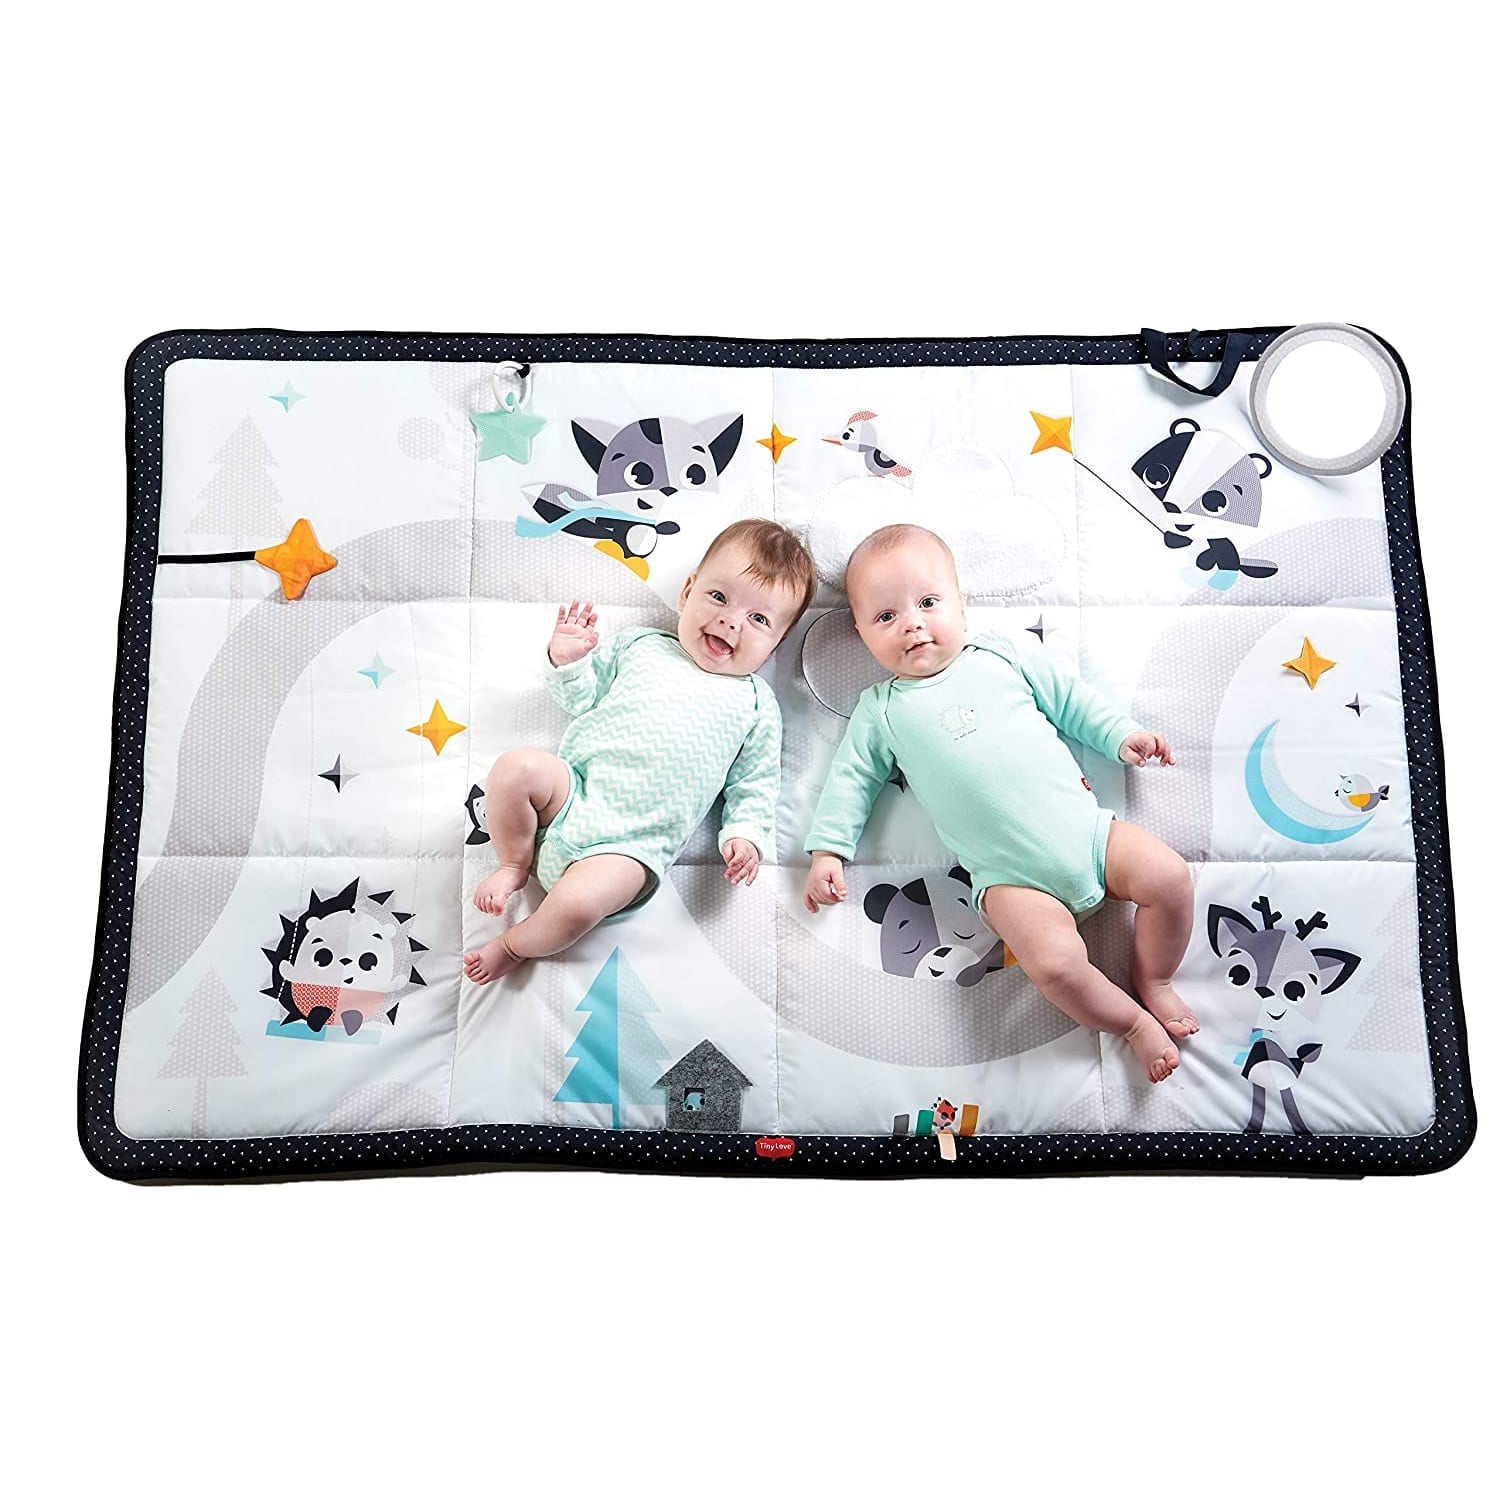 Tiny Love – Super mat magical tales product image